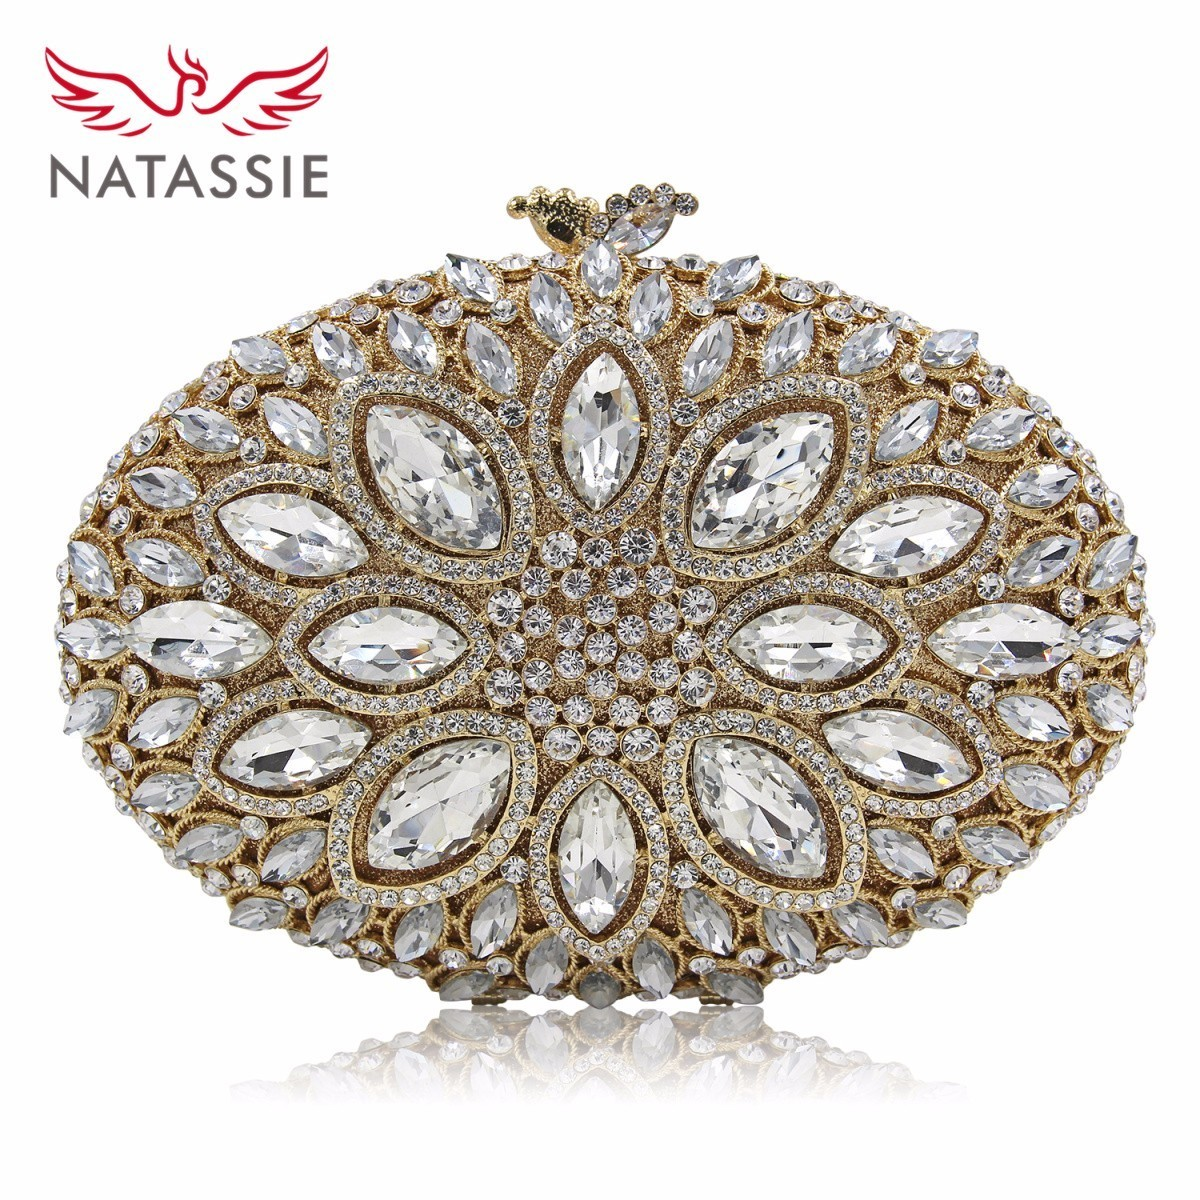 NATASSIE Women Crystal Stones Evening Bags Ladies Luxury Oval Shape Party Bag Female Wedding Clutches Purses White Gold free shipping a15 36 sky blue color fashion top crystal stones ring clutches bags for ladies nice party bag